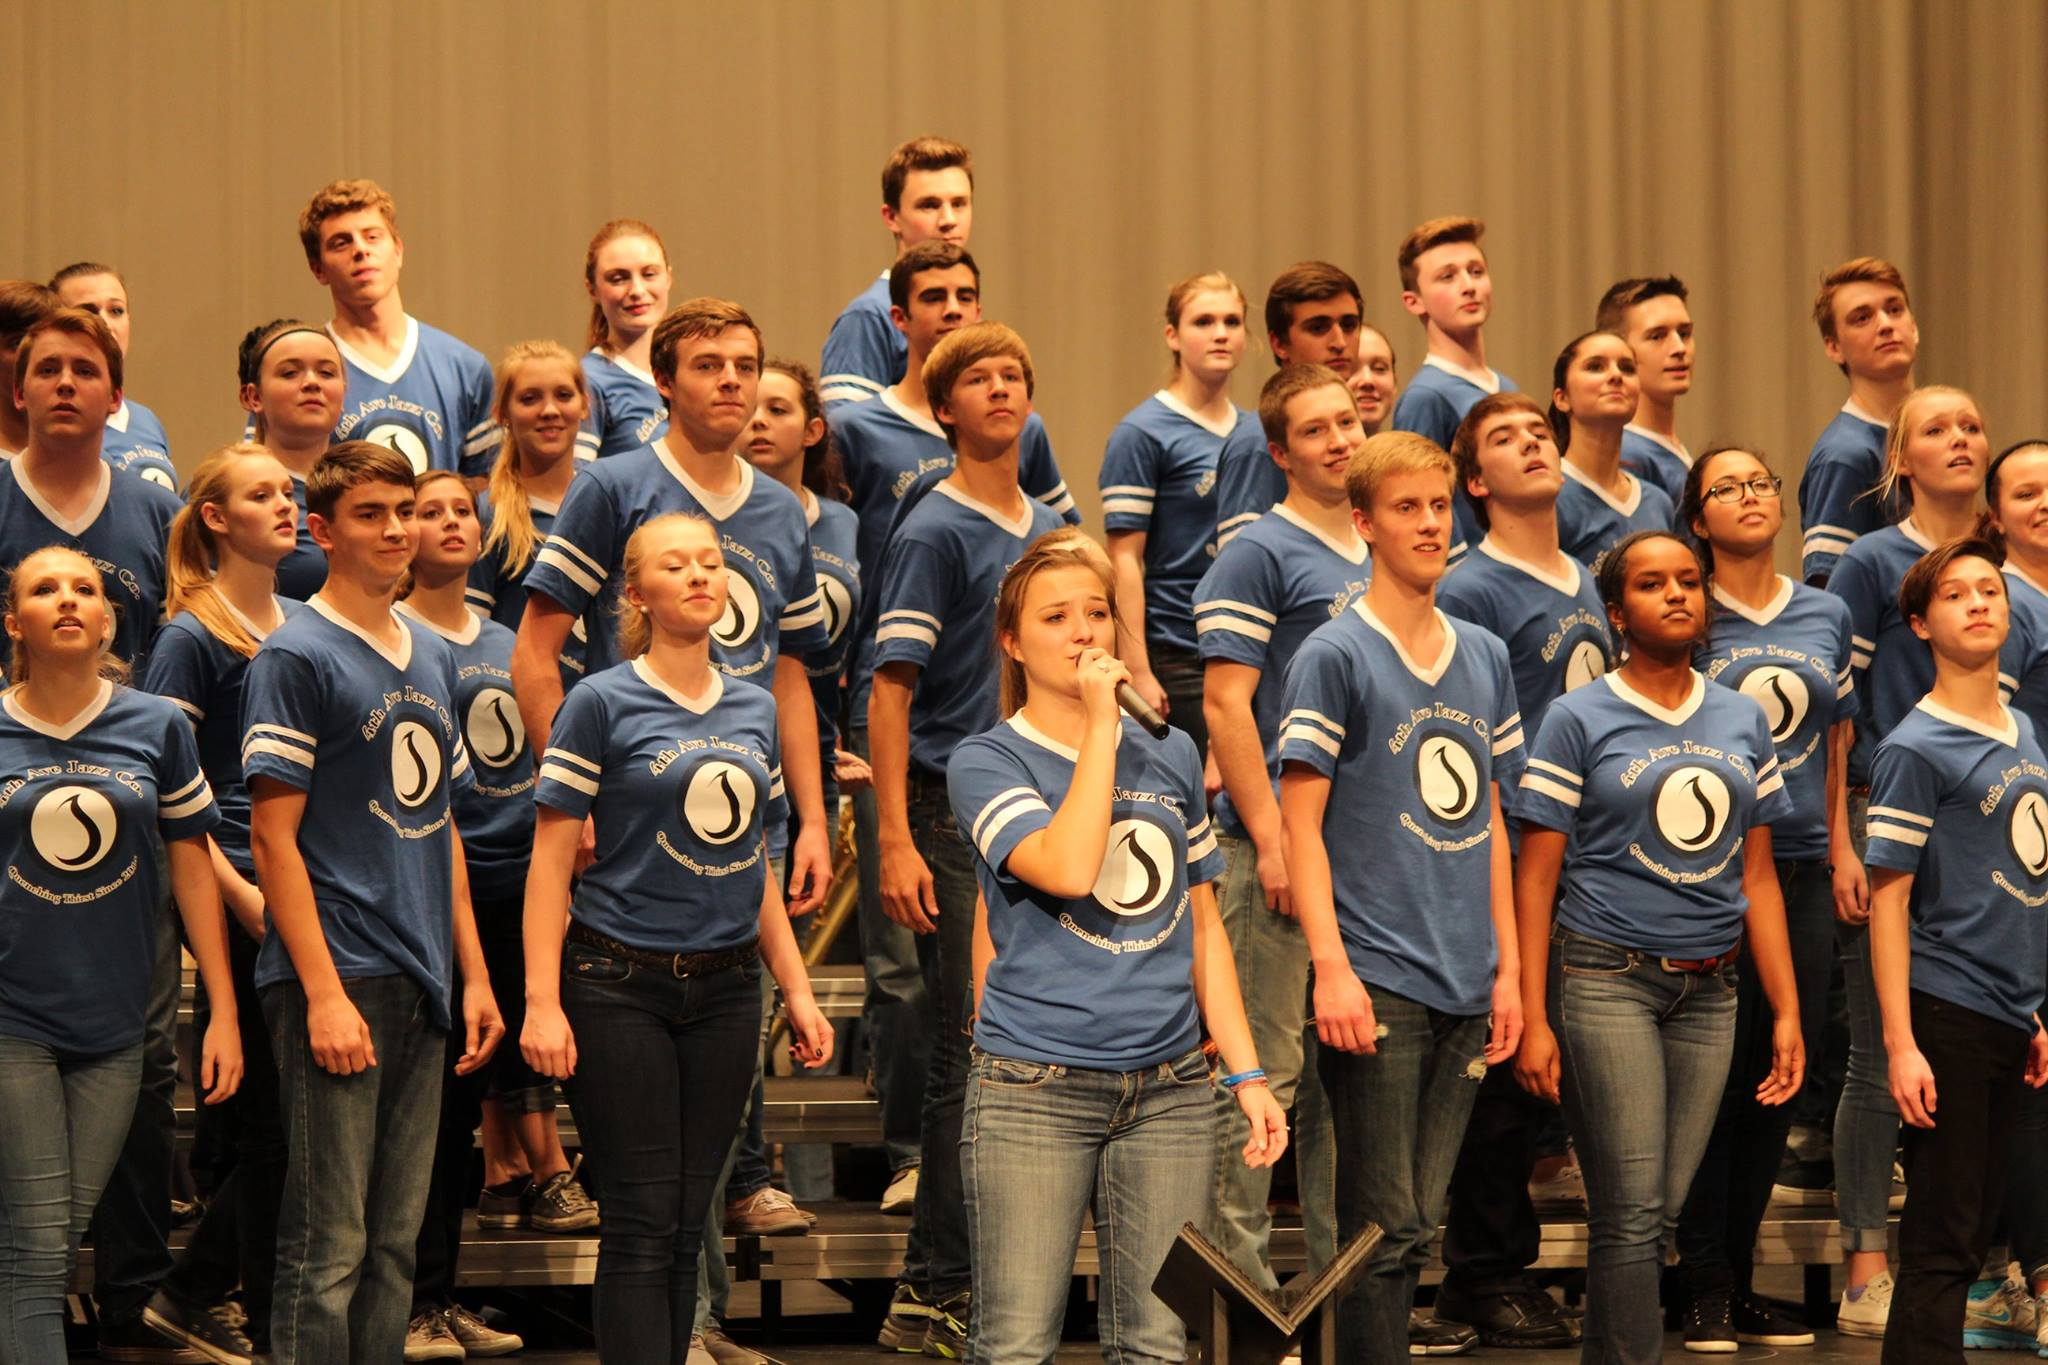 Soloist Elizabeth Fischer ('15) with the rest of the 4th Ave performers.